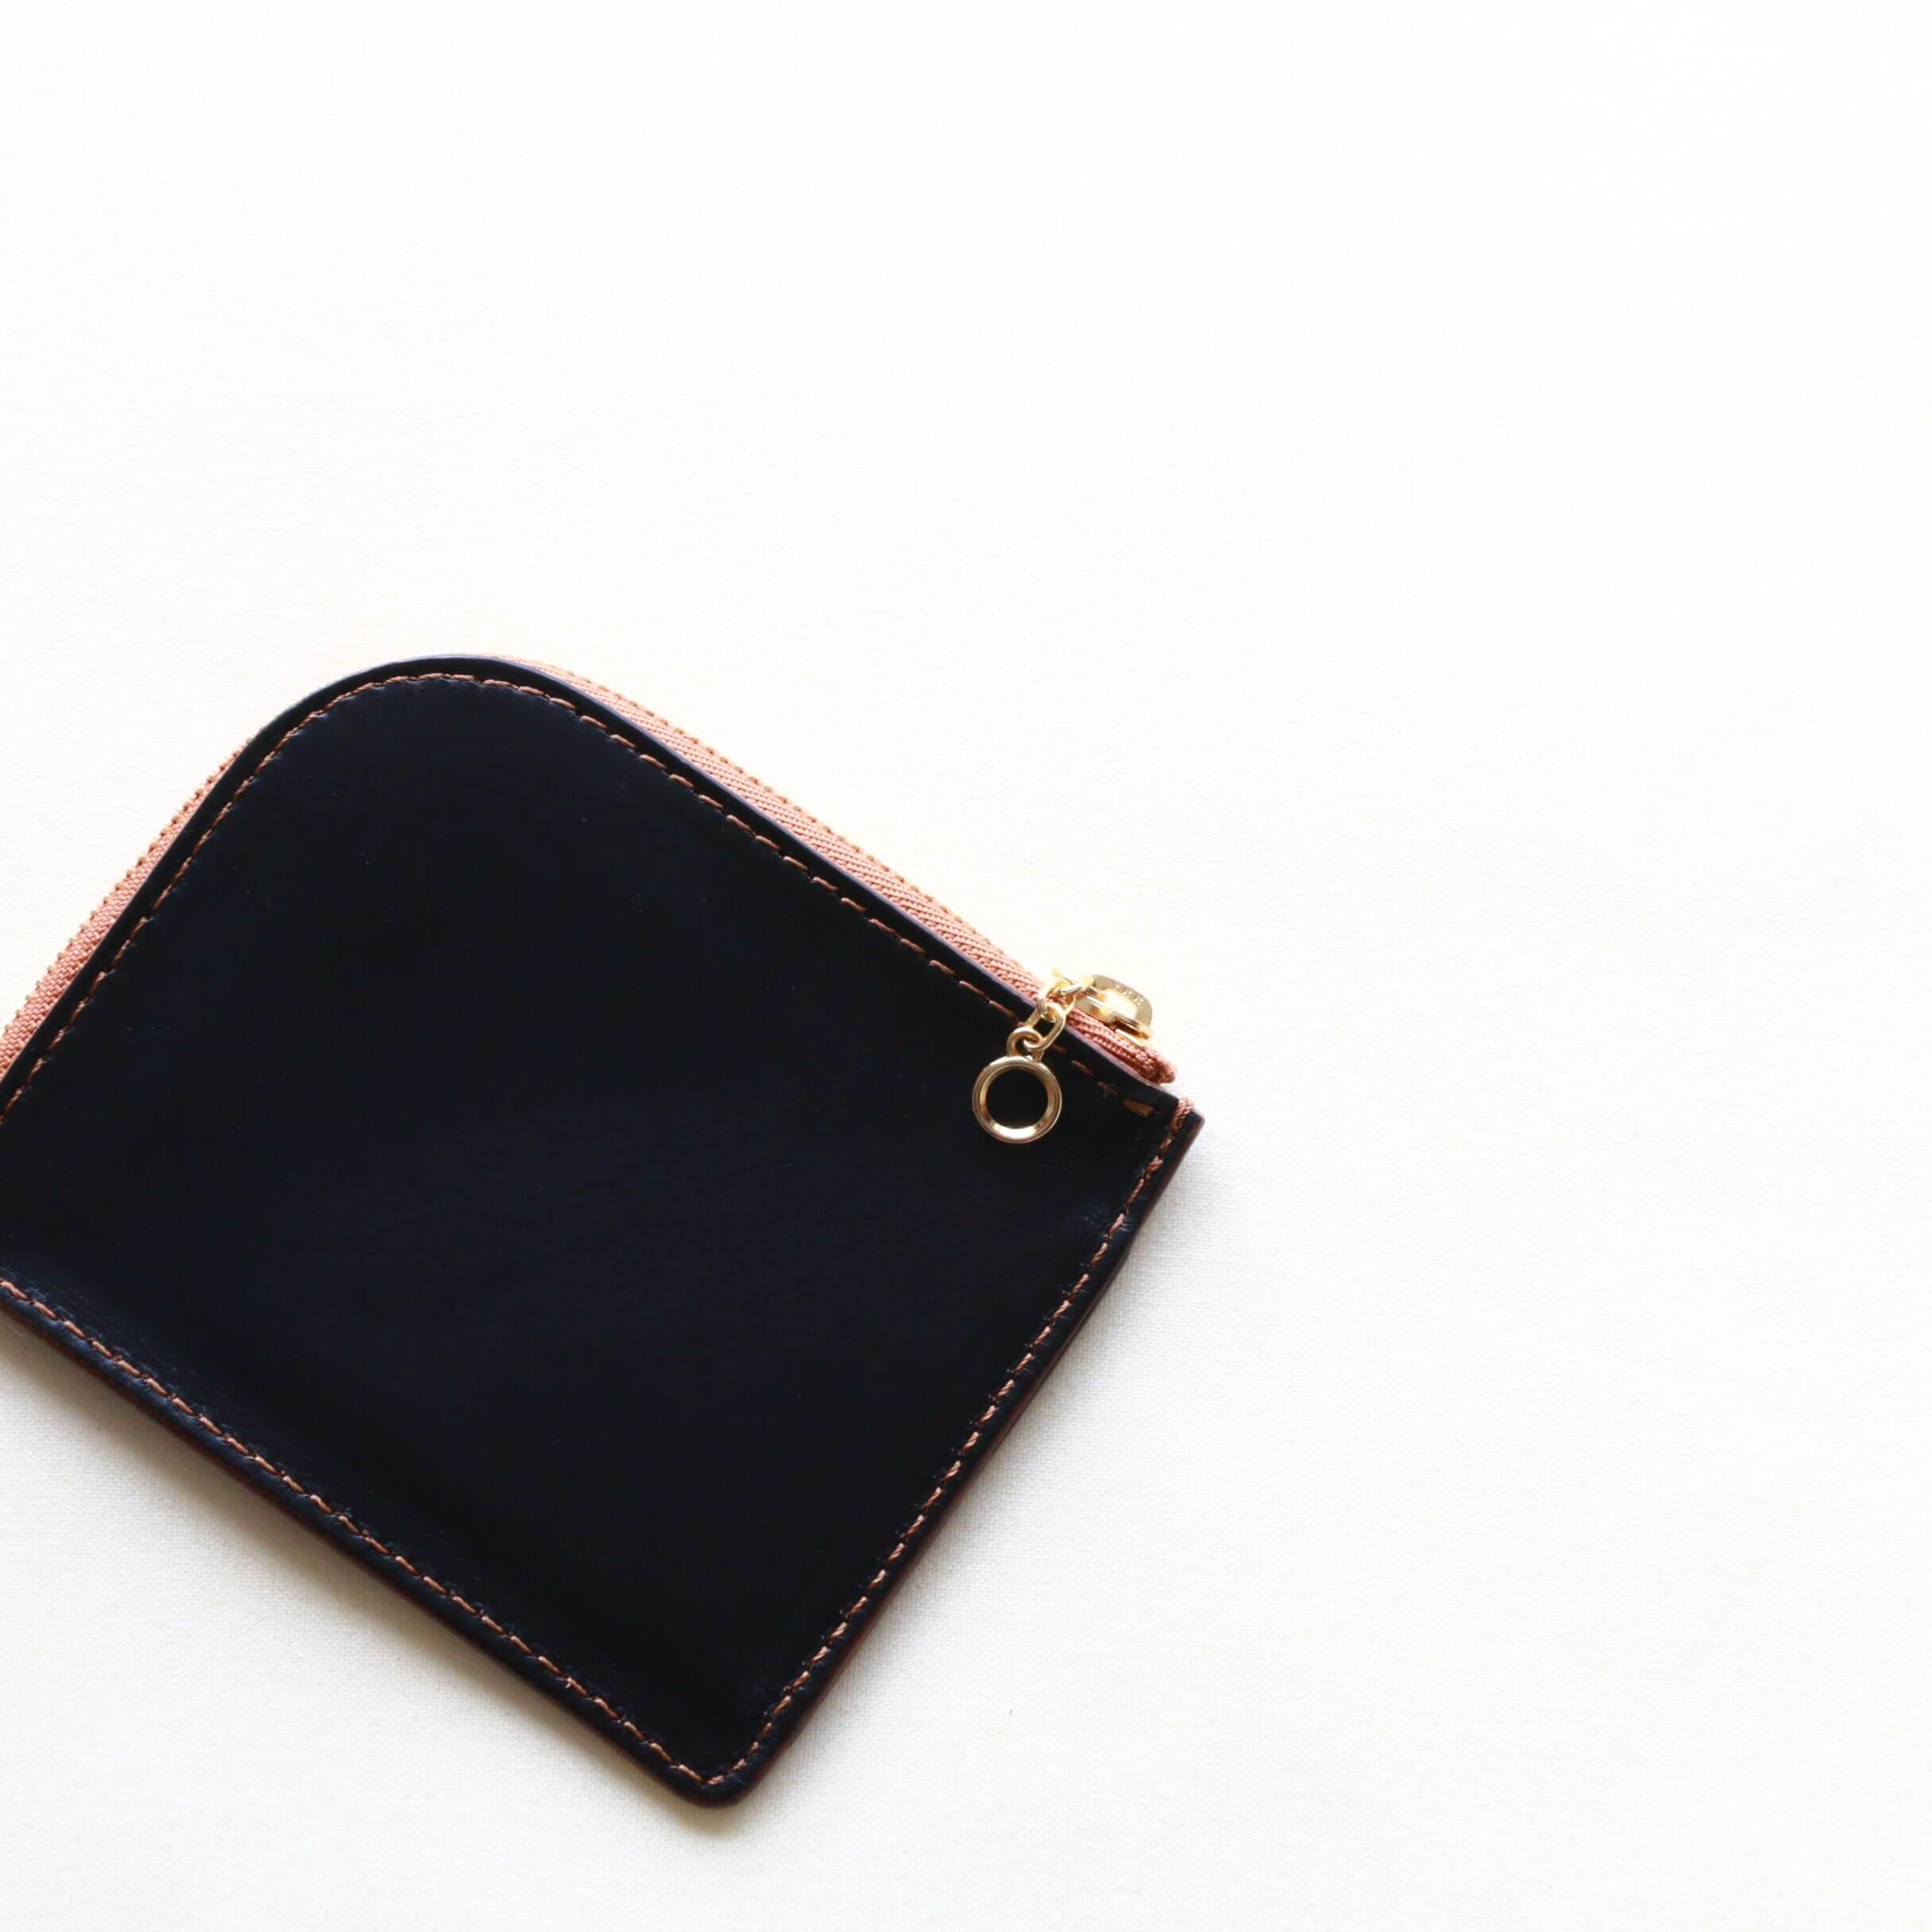 Vintage Works ヴィンテージワークス Leather Wallet クロムエクセルL字型レザーウォレット